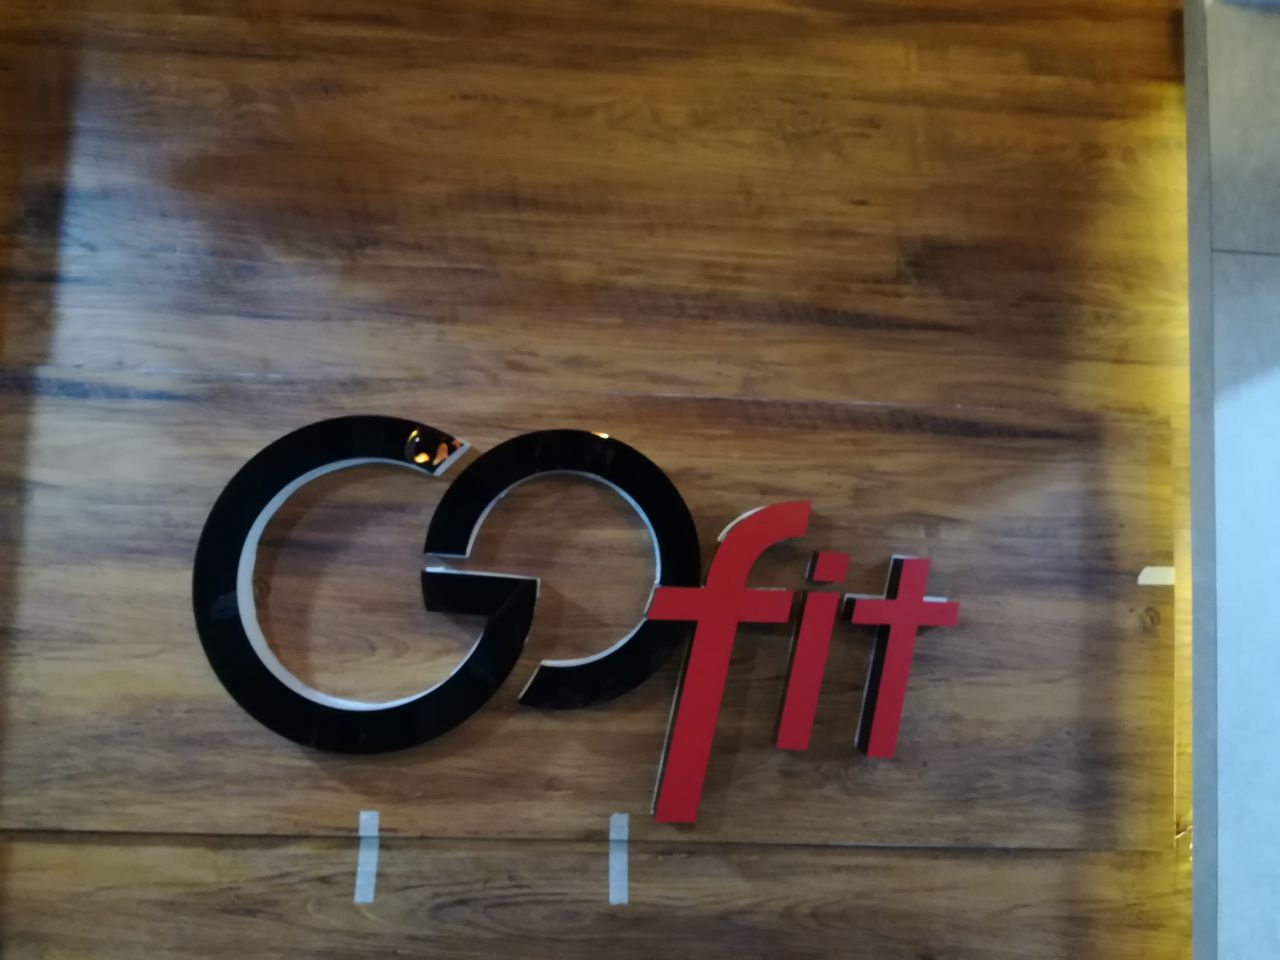 Gofit Reception